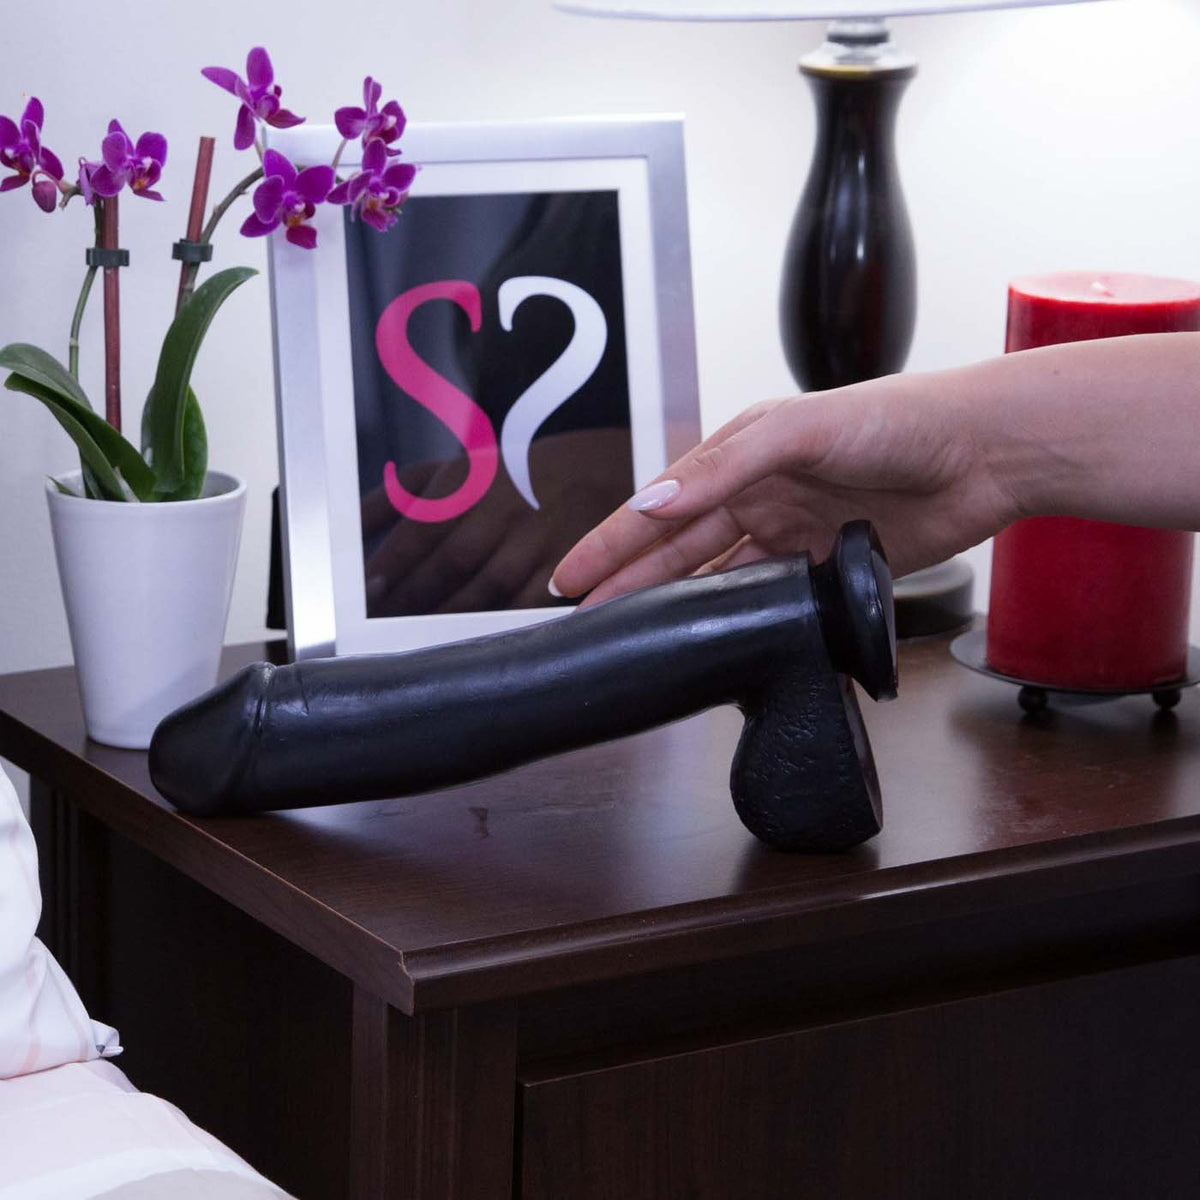 Basix 10 Inch Black Suction Cup Dildo